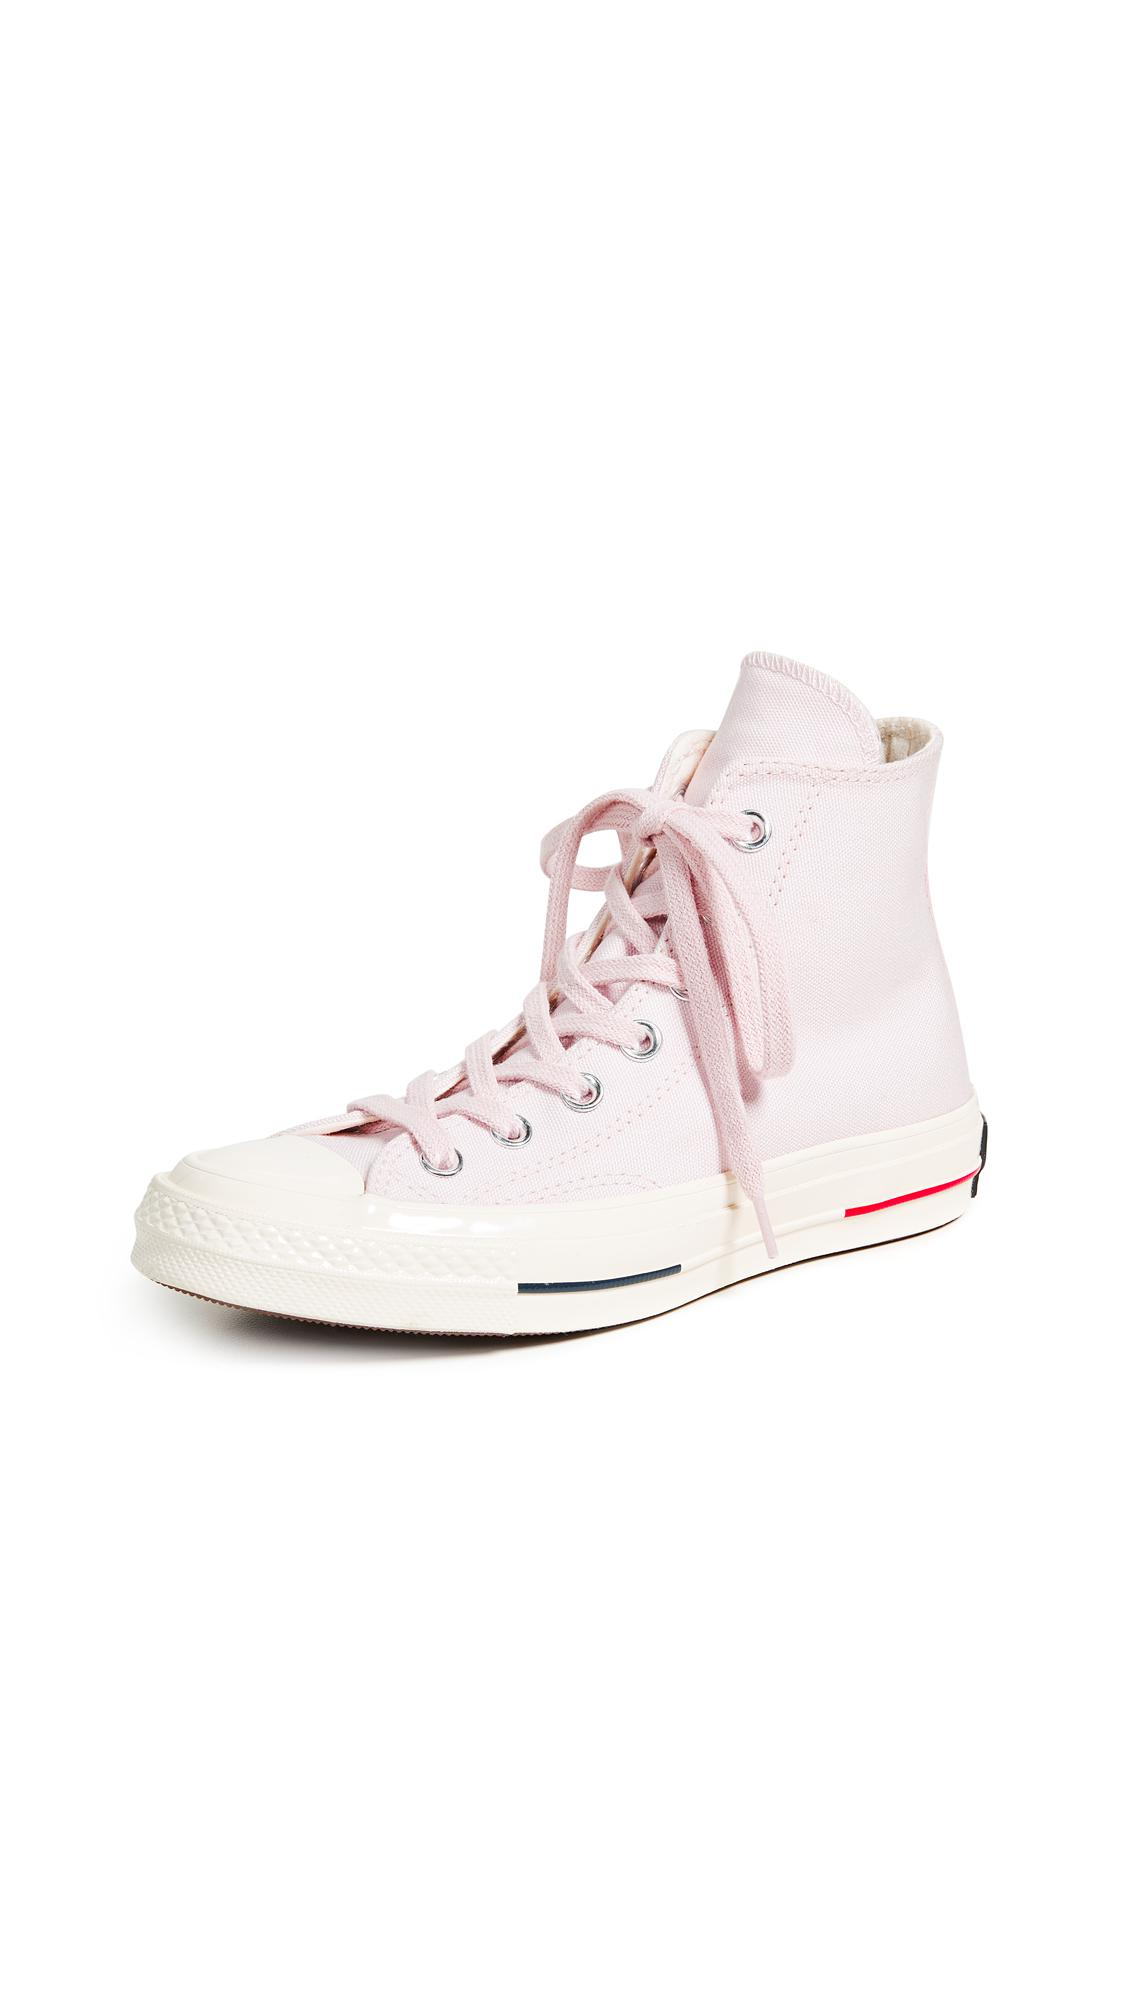 790bd3ef293 Gallery. Previously sold at  Shopbop · Women s Converse Chuck Taylor